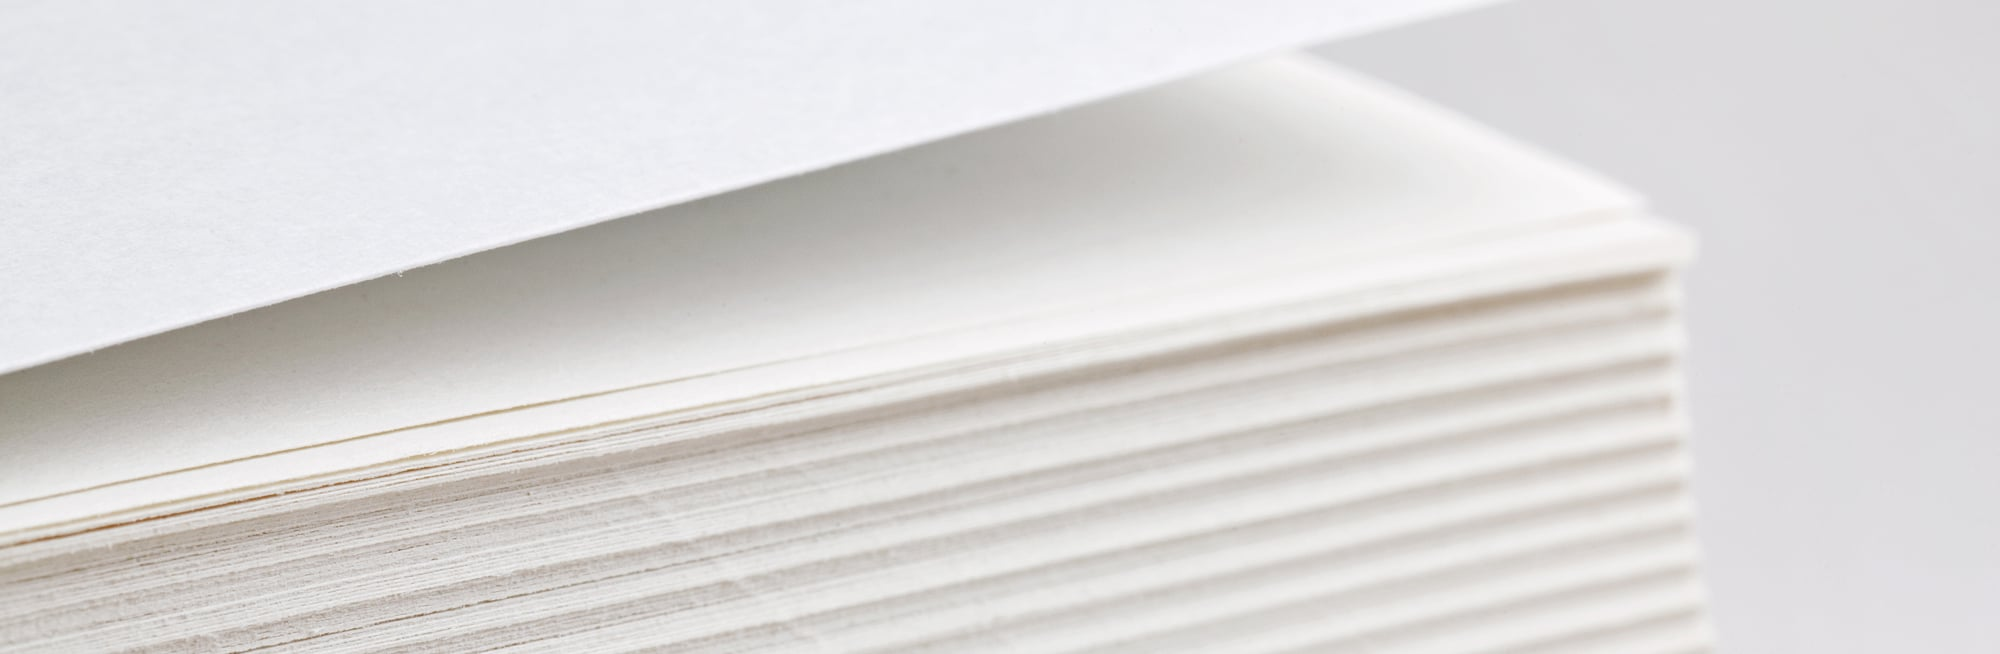 thickness of paper